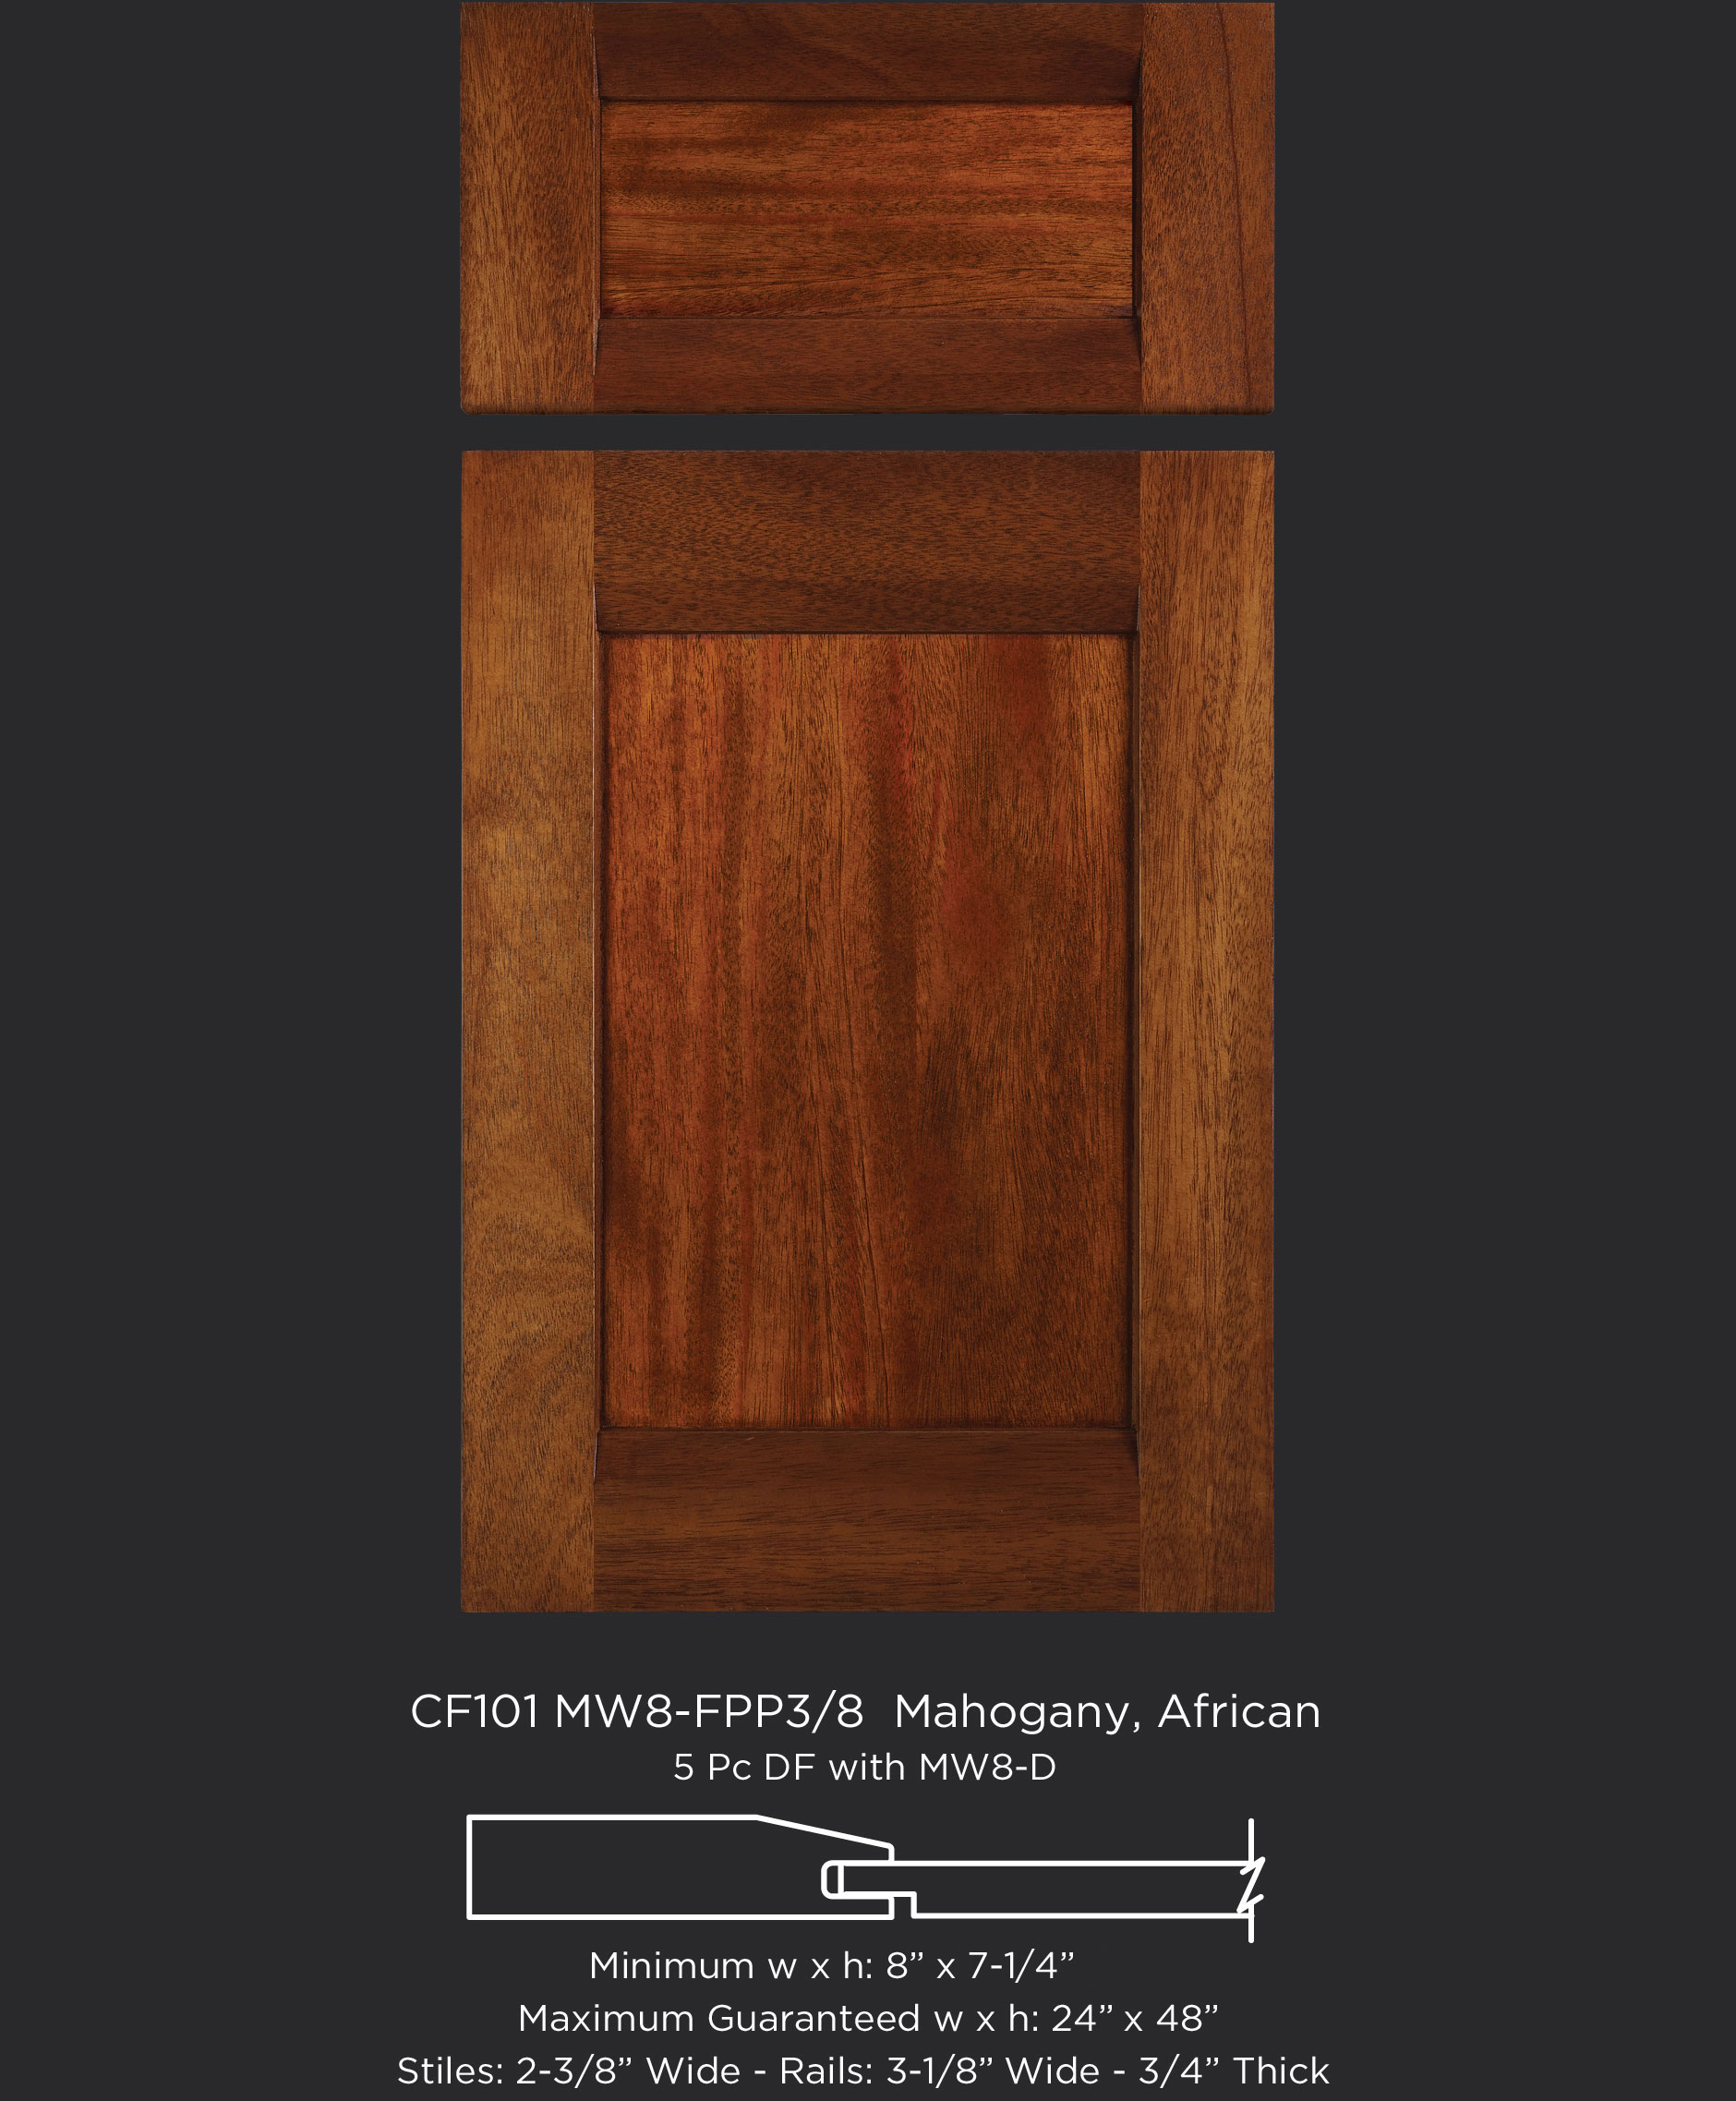 View Larger Image Combination Frame Cabinet Door CF101 MW8 FP3/8 In  Mahogany, African And 5